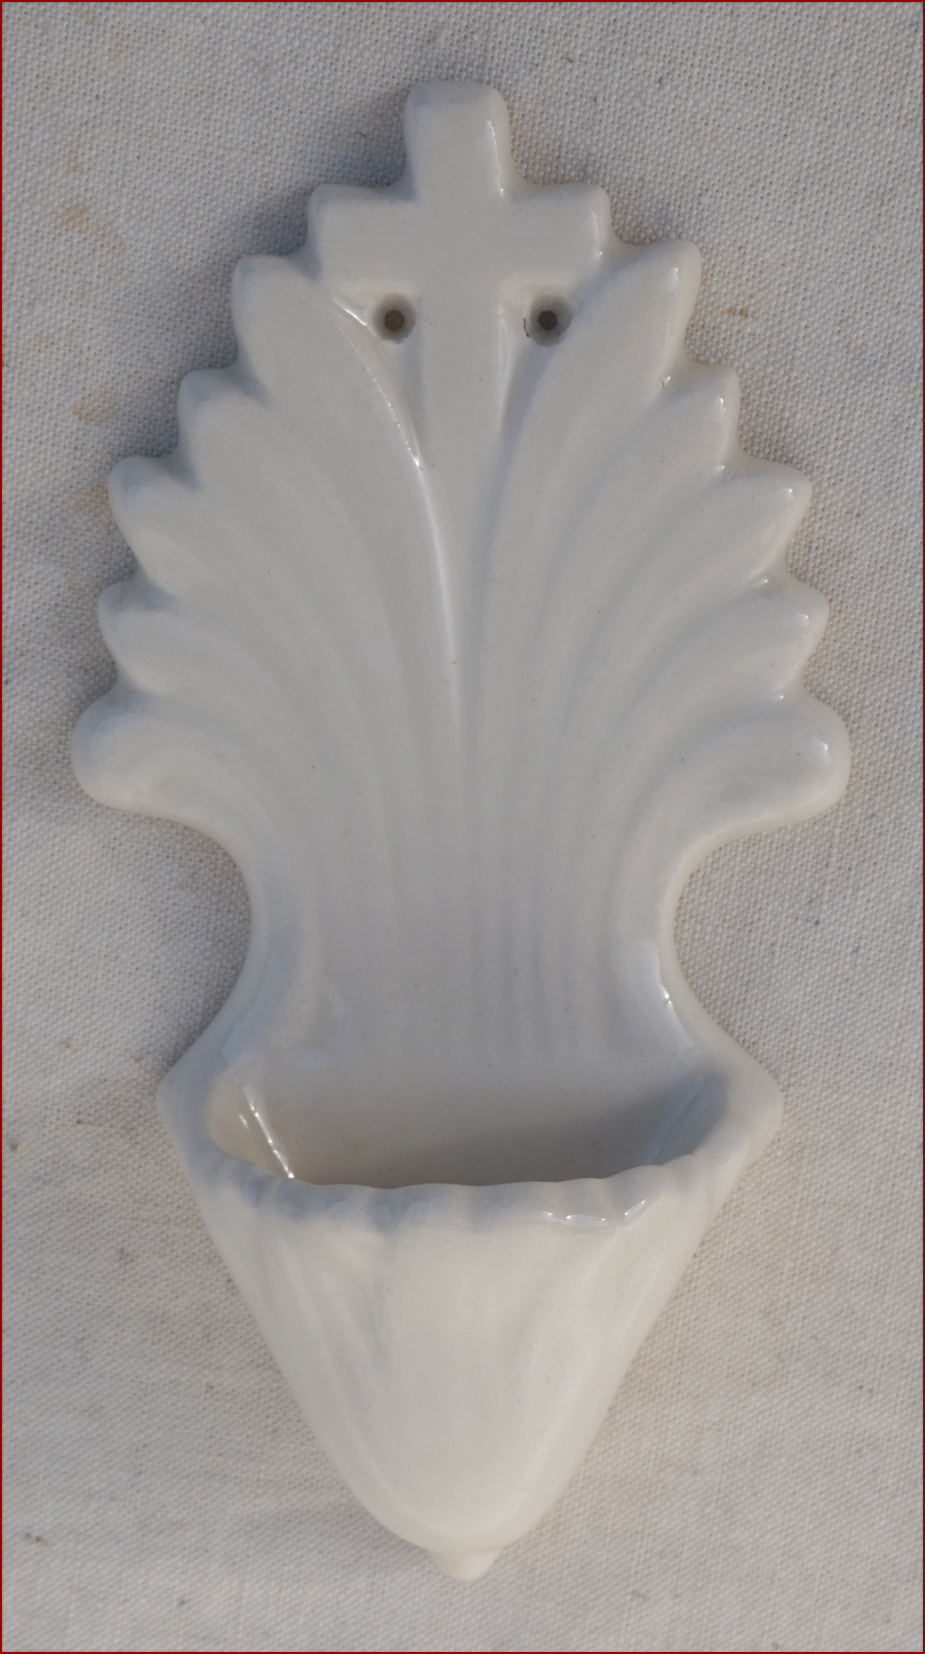 Deco Quimper Details About Hb Quimper Art Deco Wall Holy Water Font White Faience France 1930